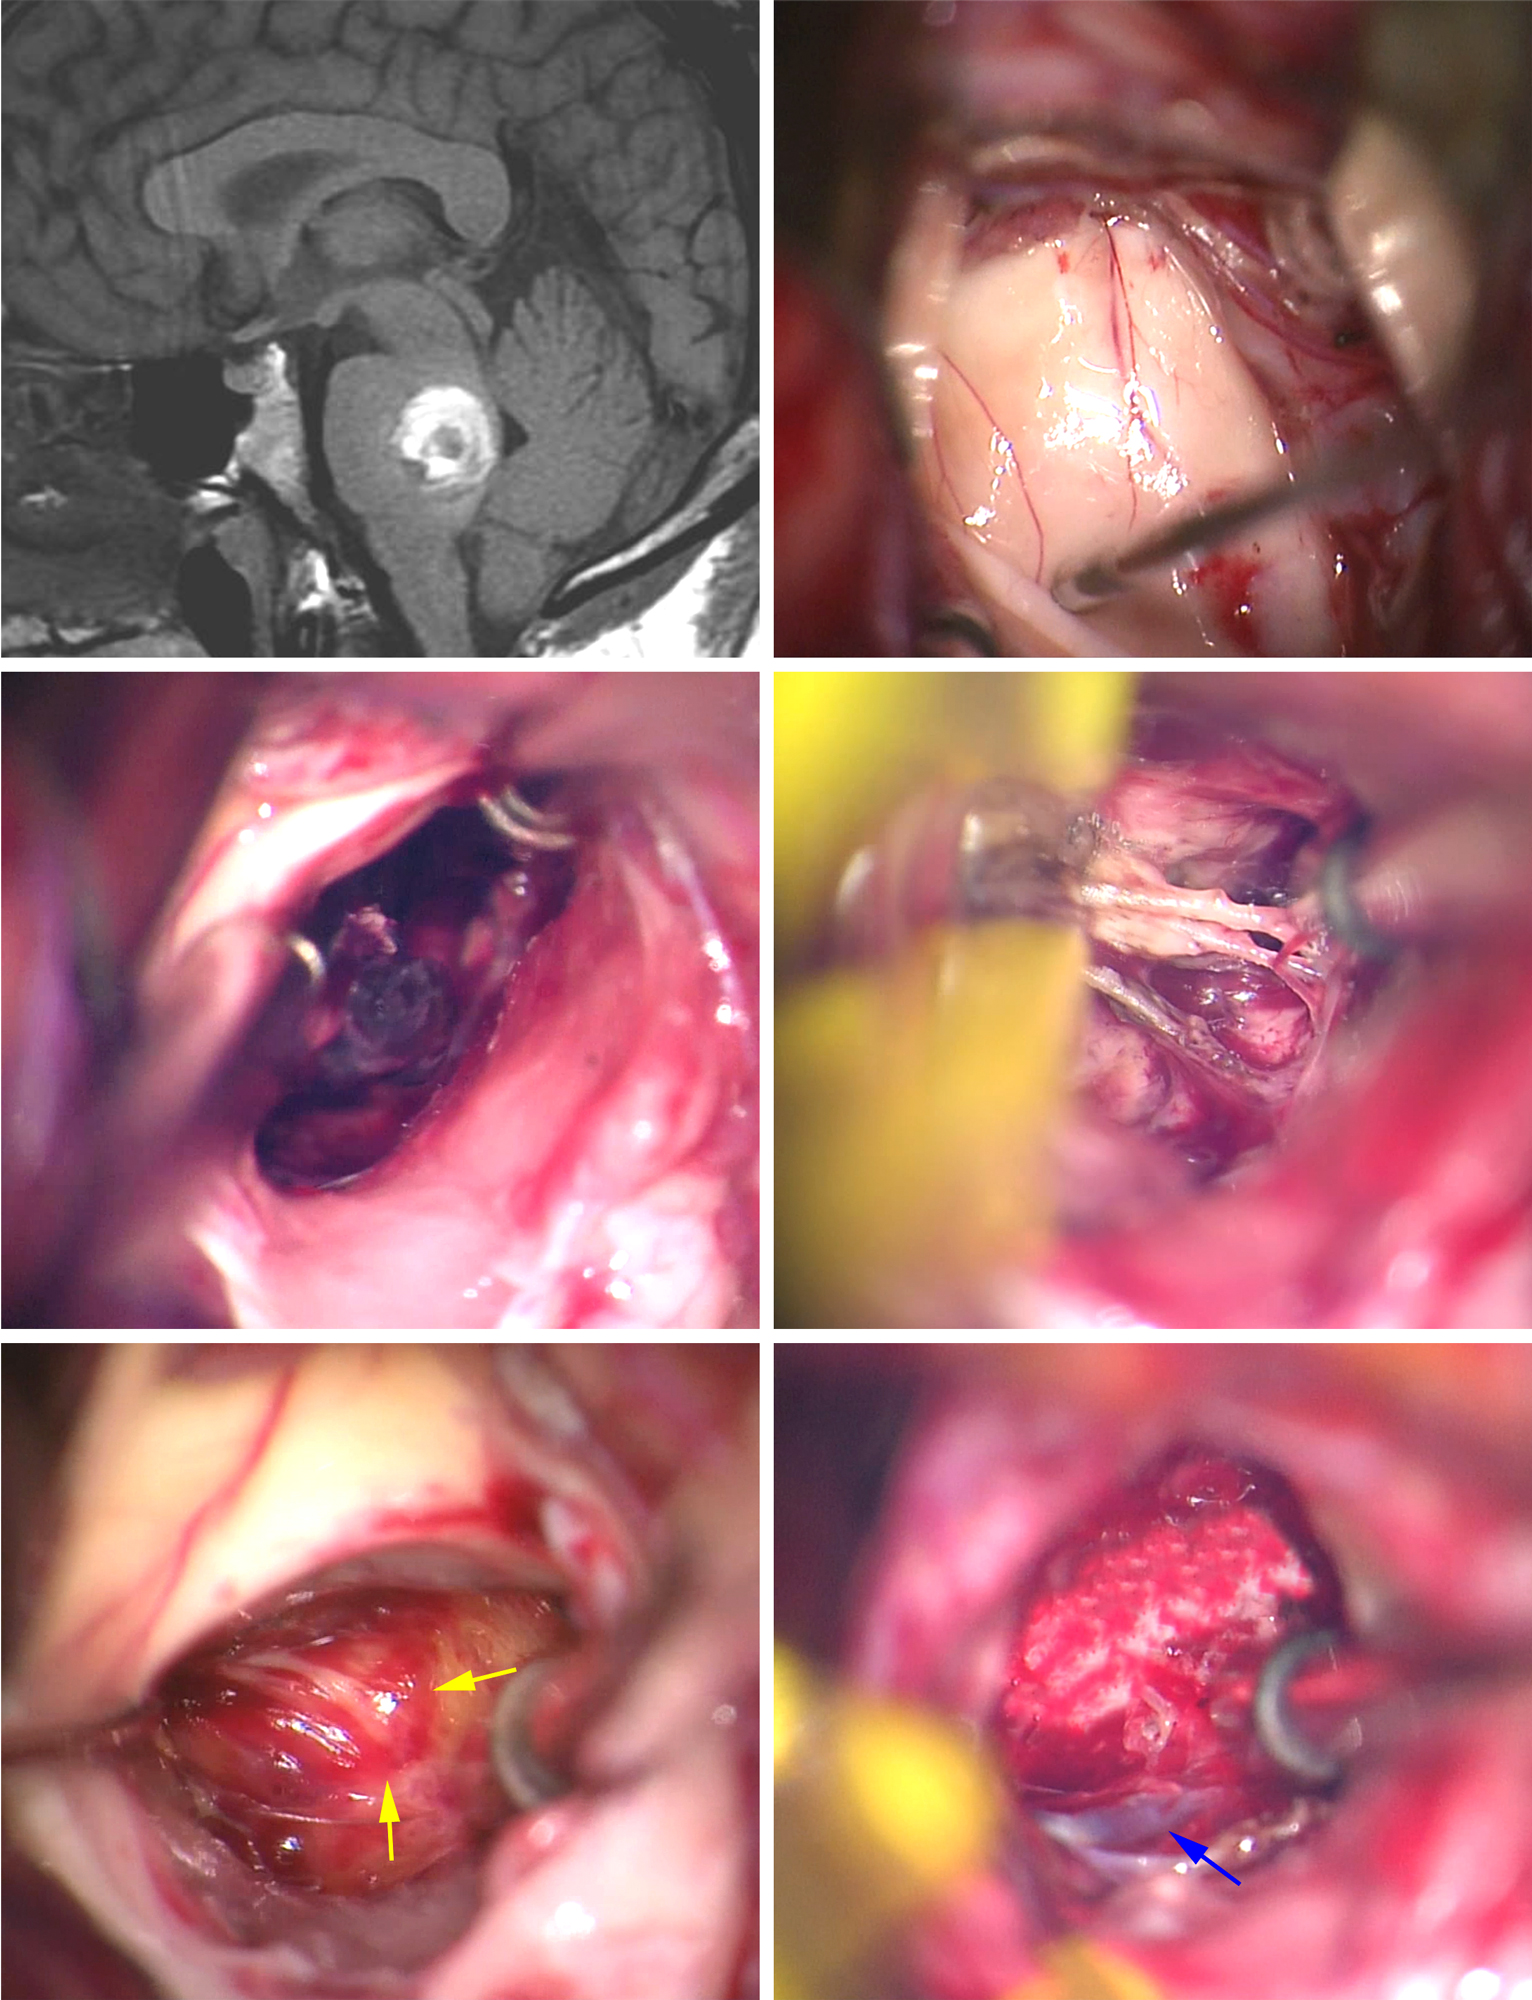 Figure 7: This posterior pontine CM was accessed via the telovelar approach and mapping of the facial colliculus on the floor of the ventricle (upper row of photos). Evacuation of the hematoma provided additional space; the feeding arteries were coagulated and cut (middle row). The capsule was then bluntly dissected away from the gliotic wall (yellow arrows) of the resection cavity while the DVA (blue arrow) was preserved at the end of resection (lower row).